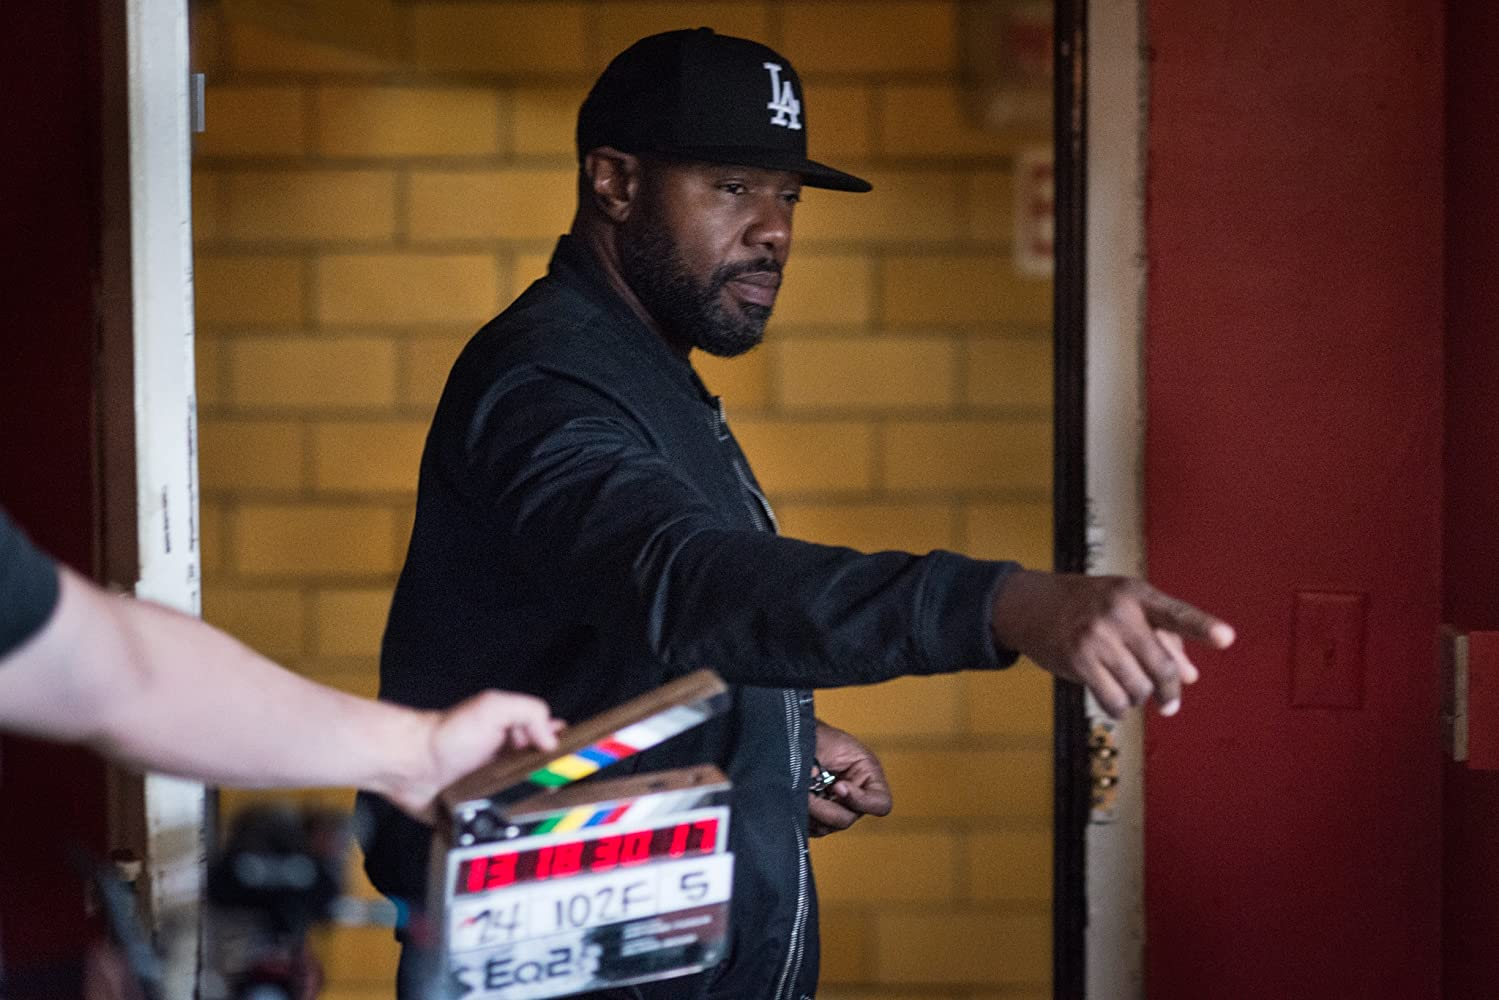 Antoine Fuqua in The Equalizer 2 (2018)